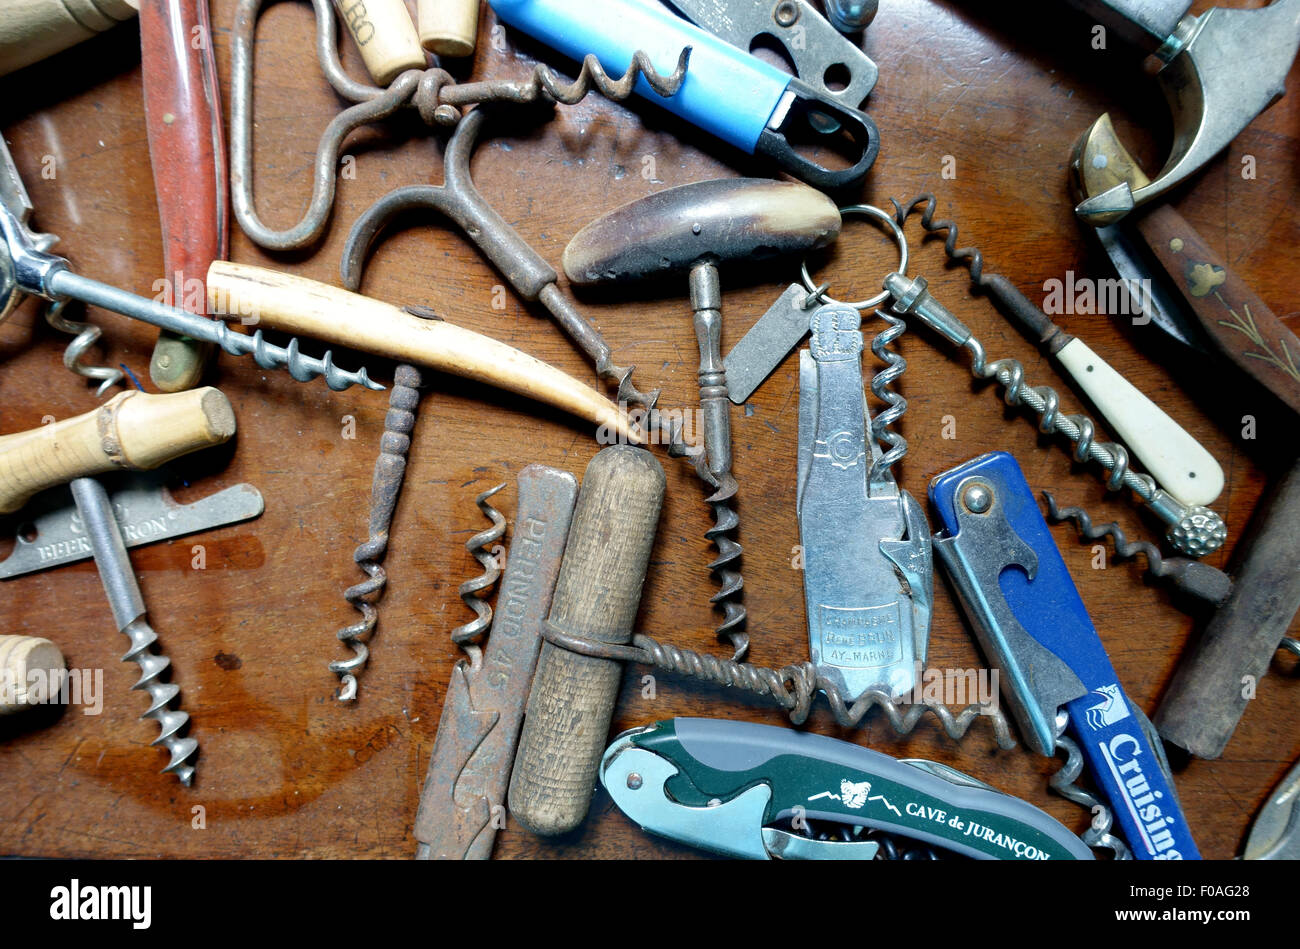 Collection of corkscrews in a home, France - Stock Image